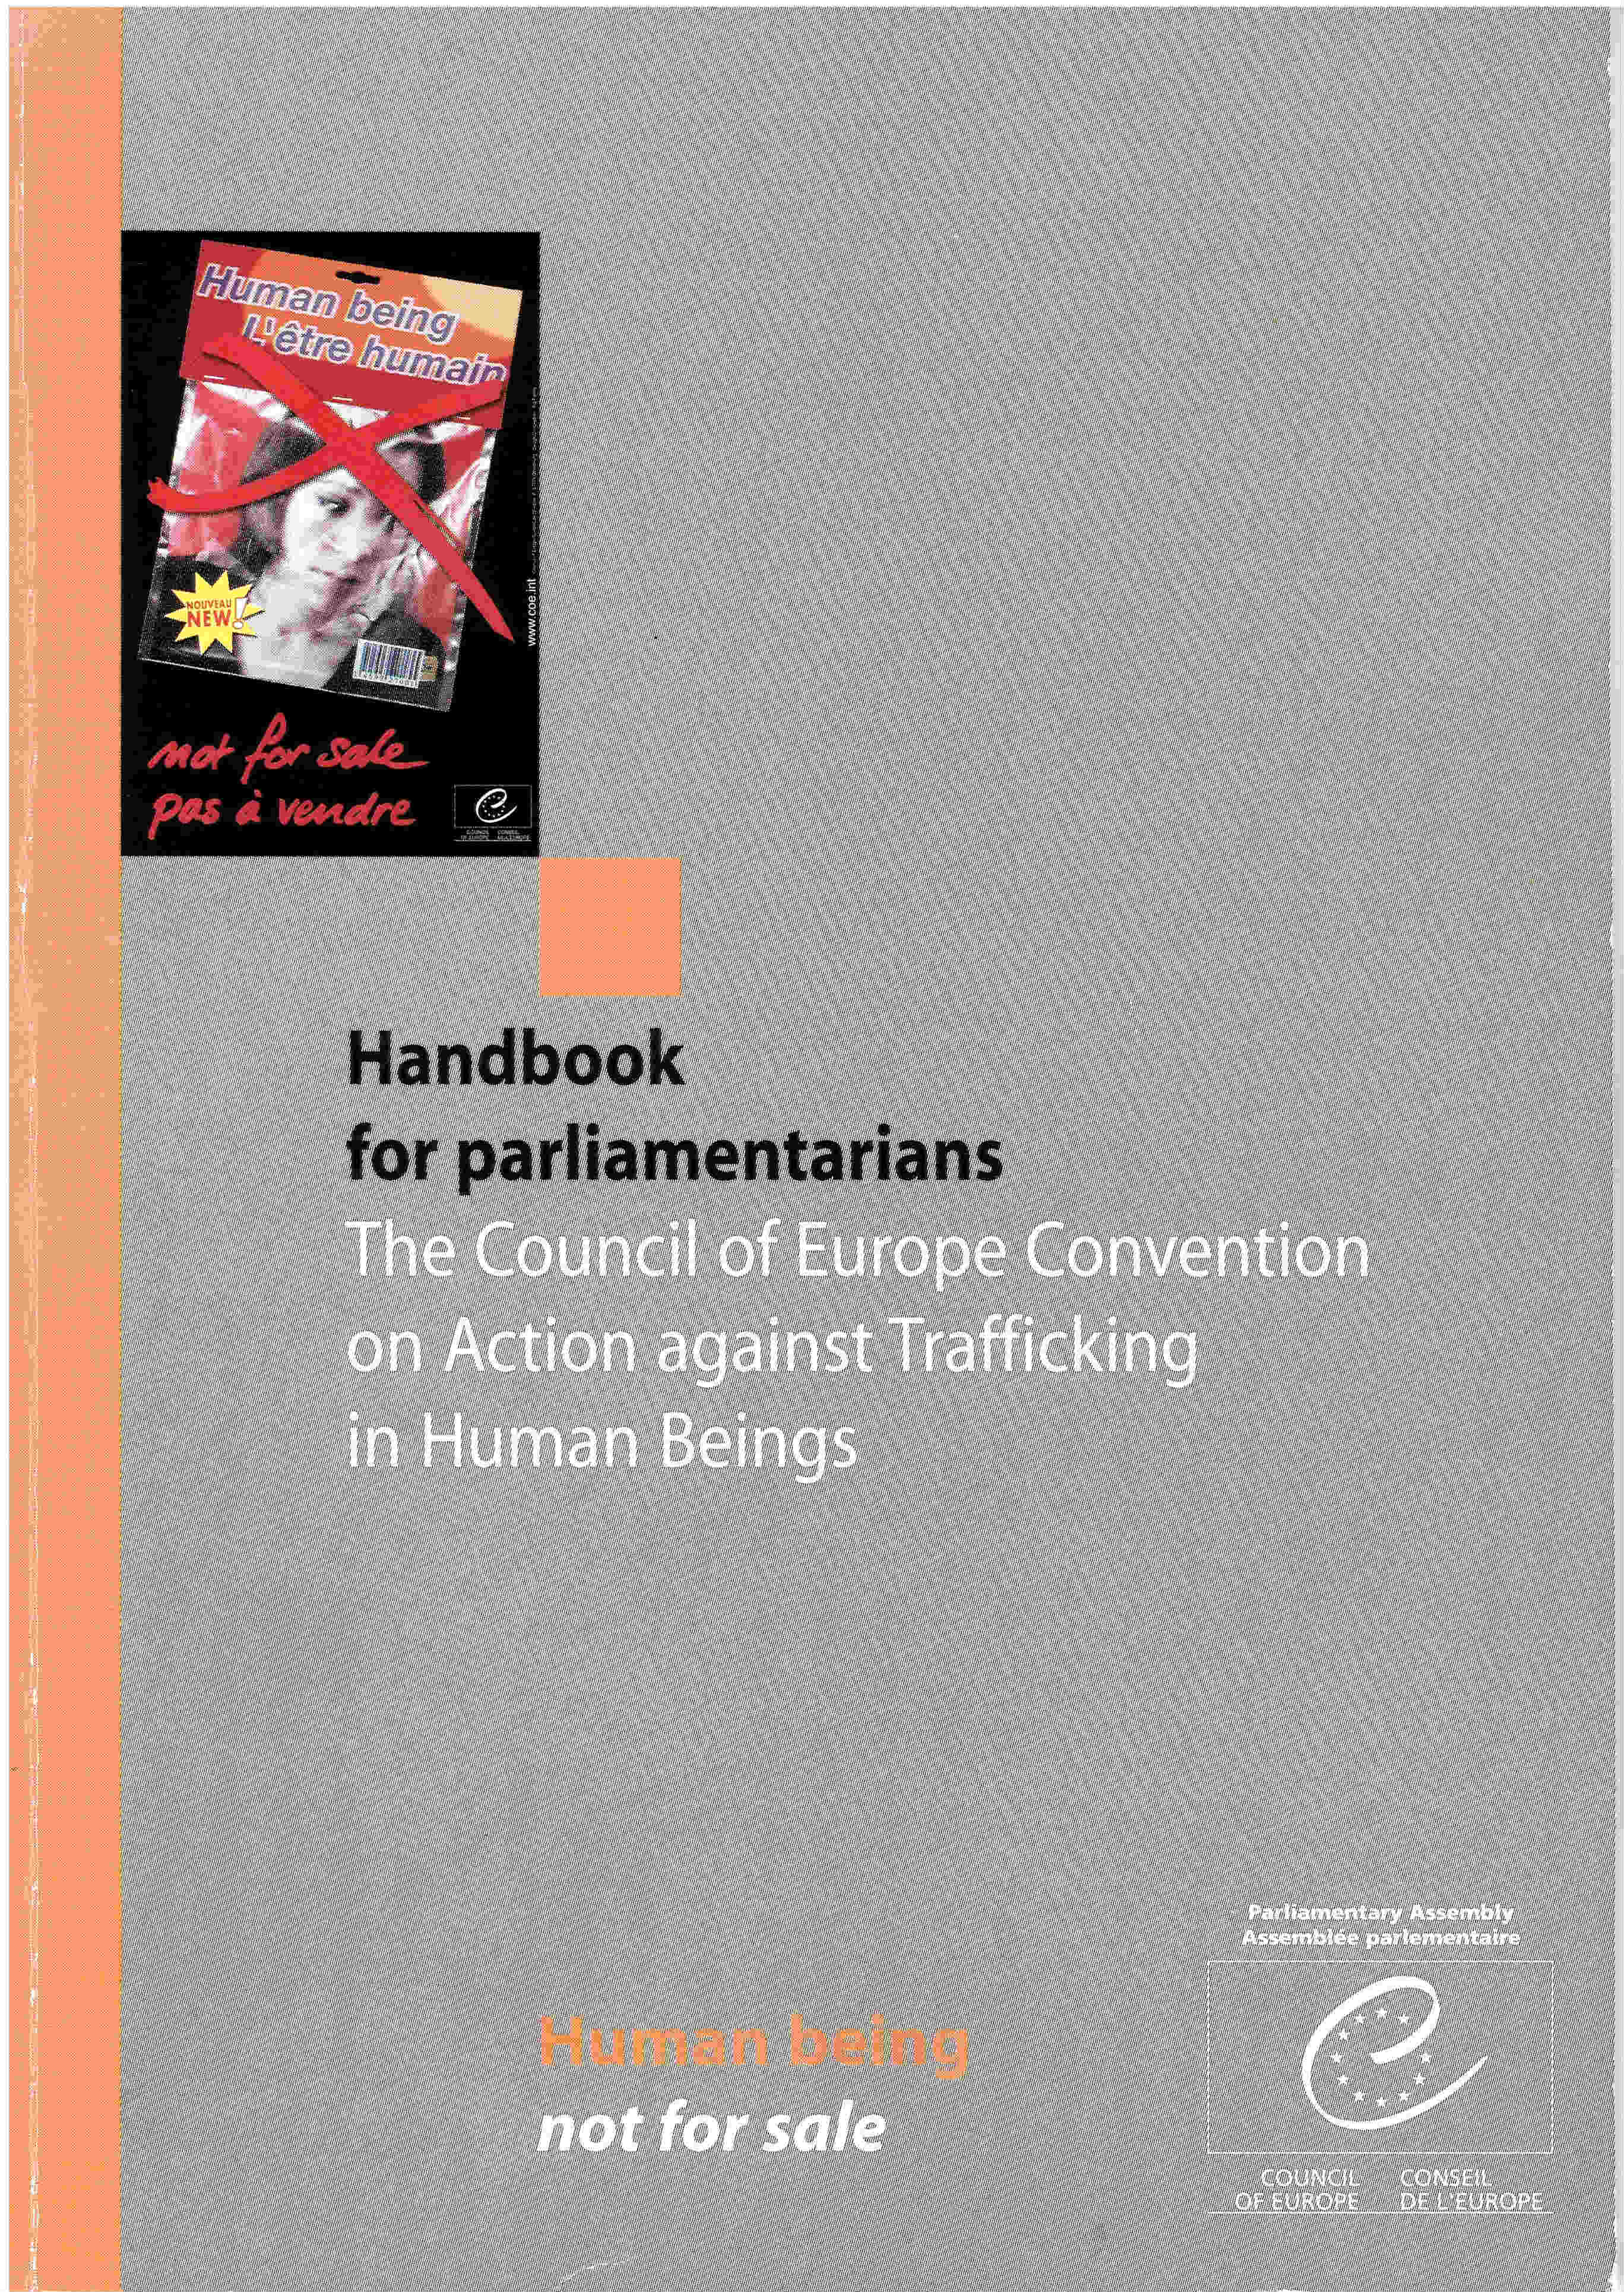 Handbook for parliamentarians - The Council of Europe Convention on Action against Trafficking in Human Beings